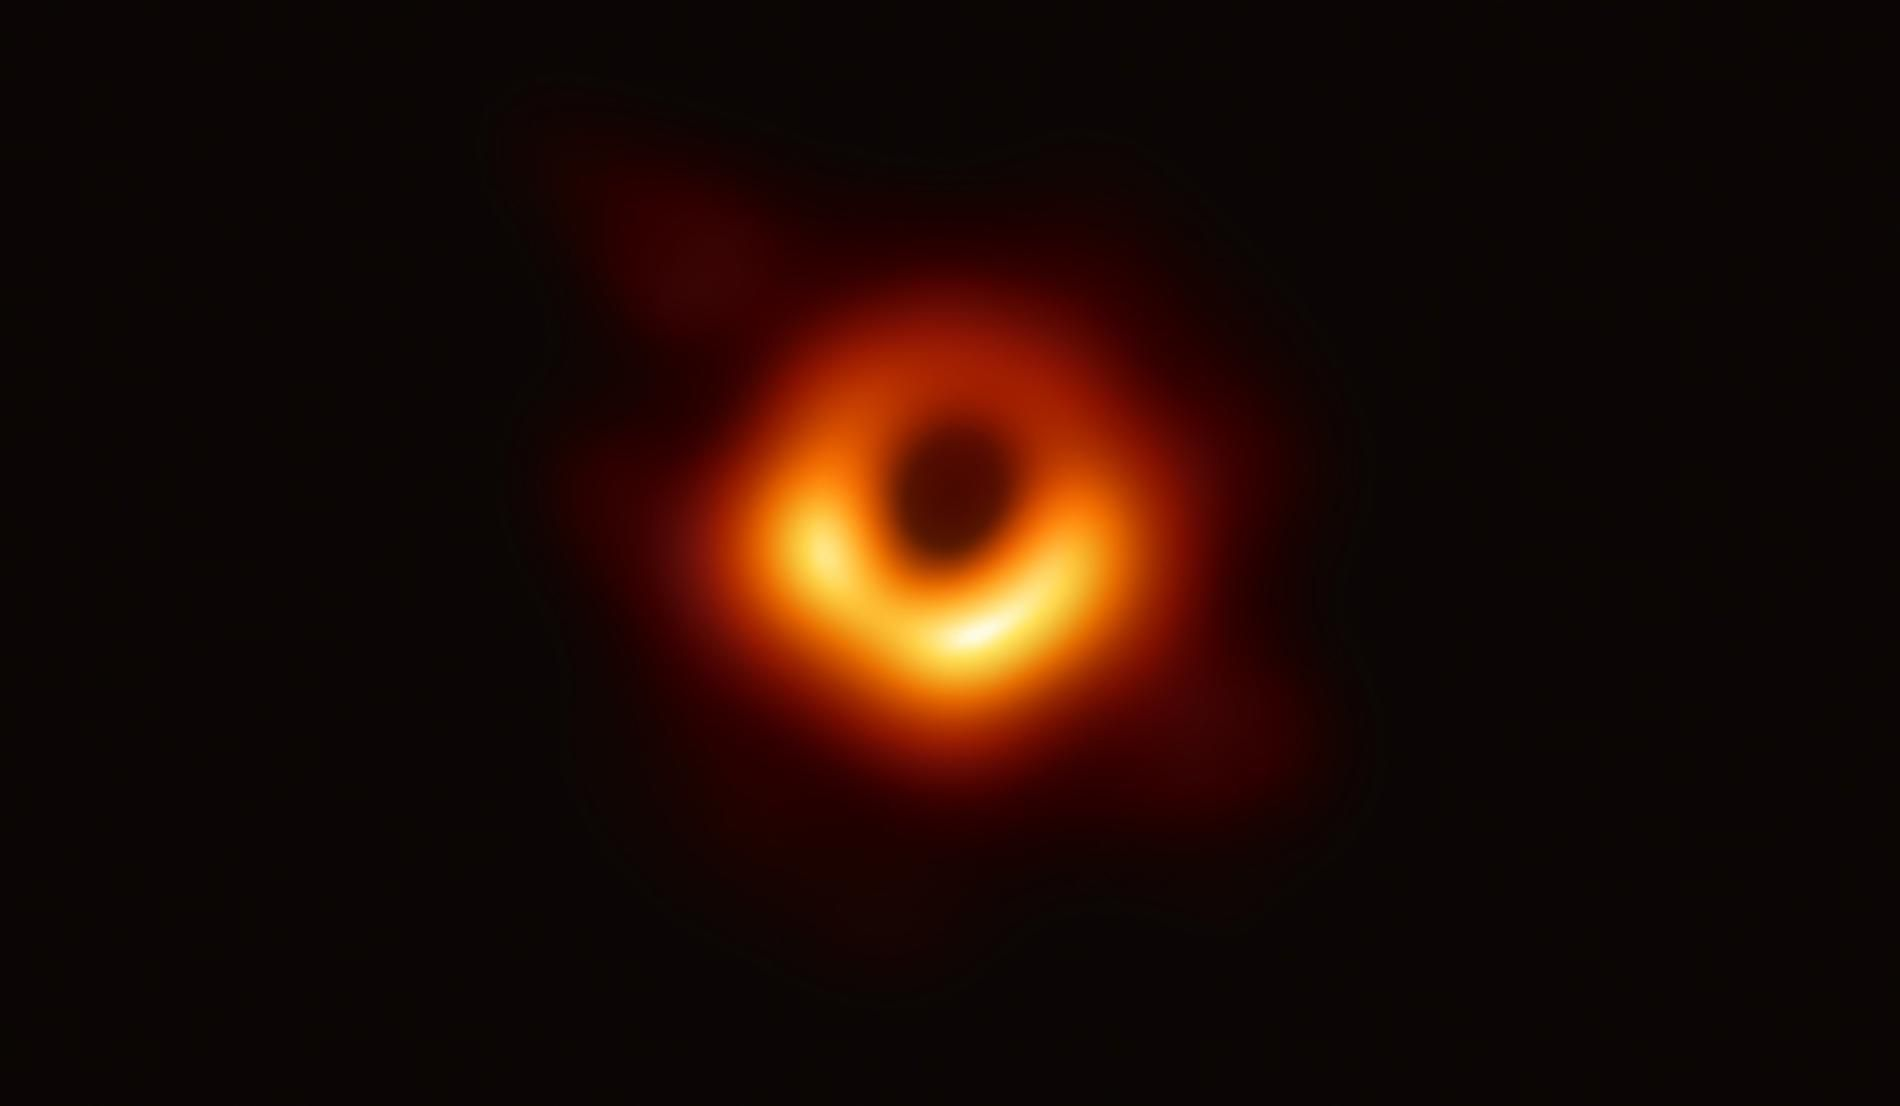 Behold This Awe Inspiring Image Of A Miraculous Space Oddityan Incredible Feat Of Science Https T Co Ooudtxust3 More Mit Bildern Schwarzes Loch Lichtjahr Exoplaneten